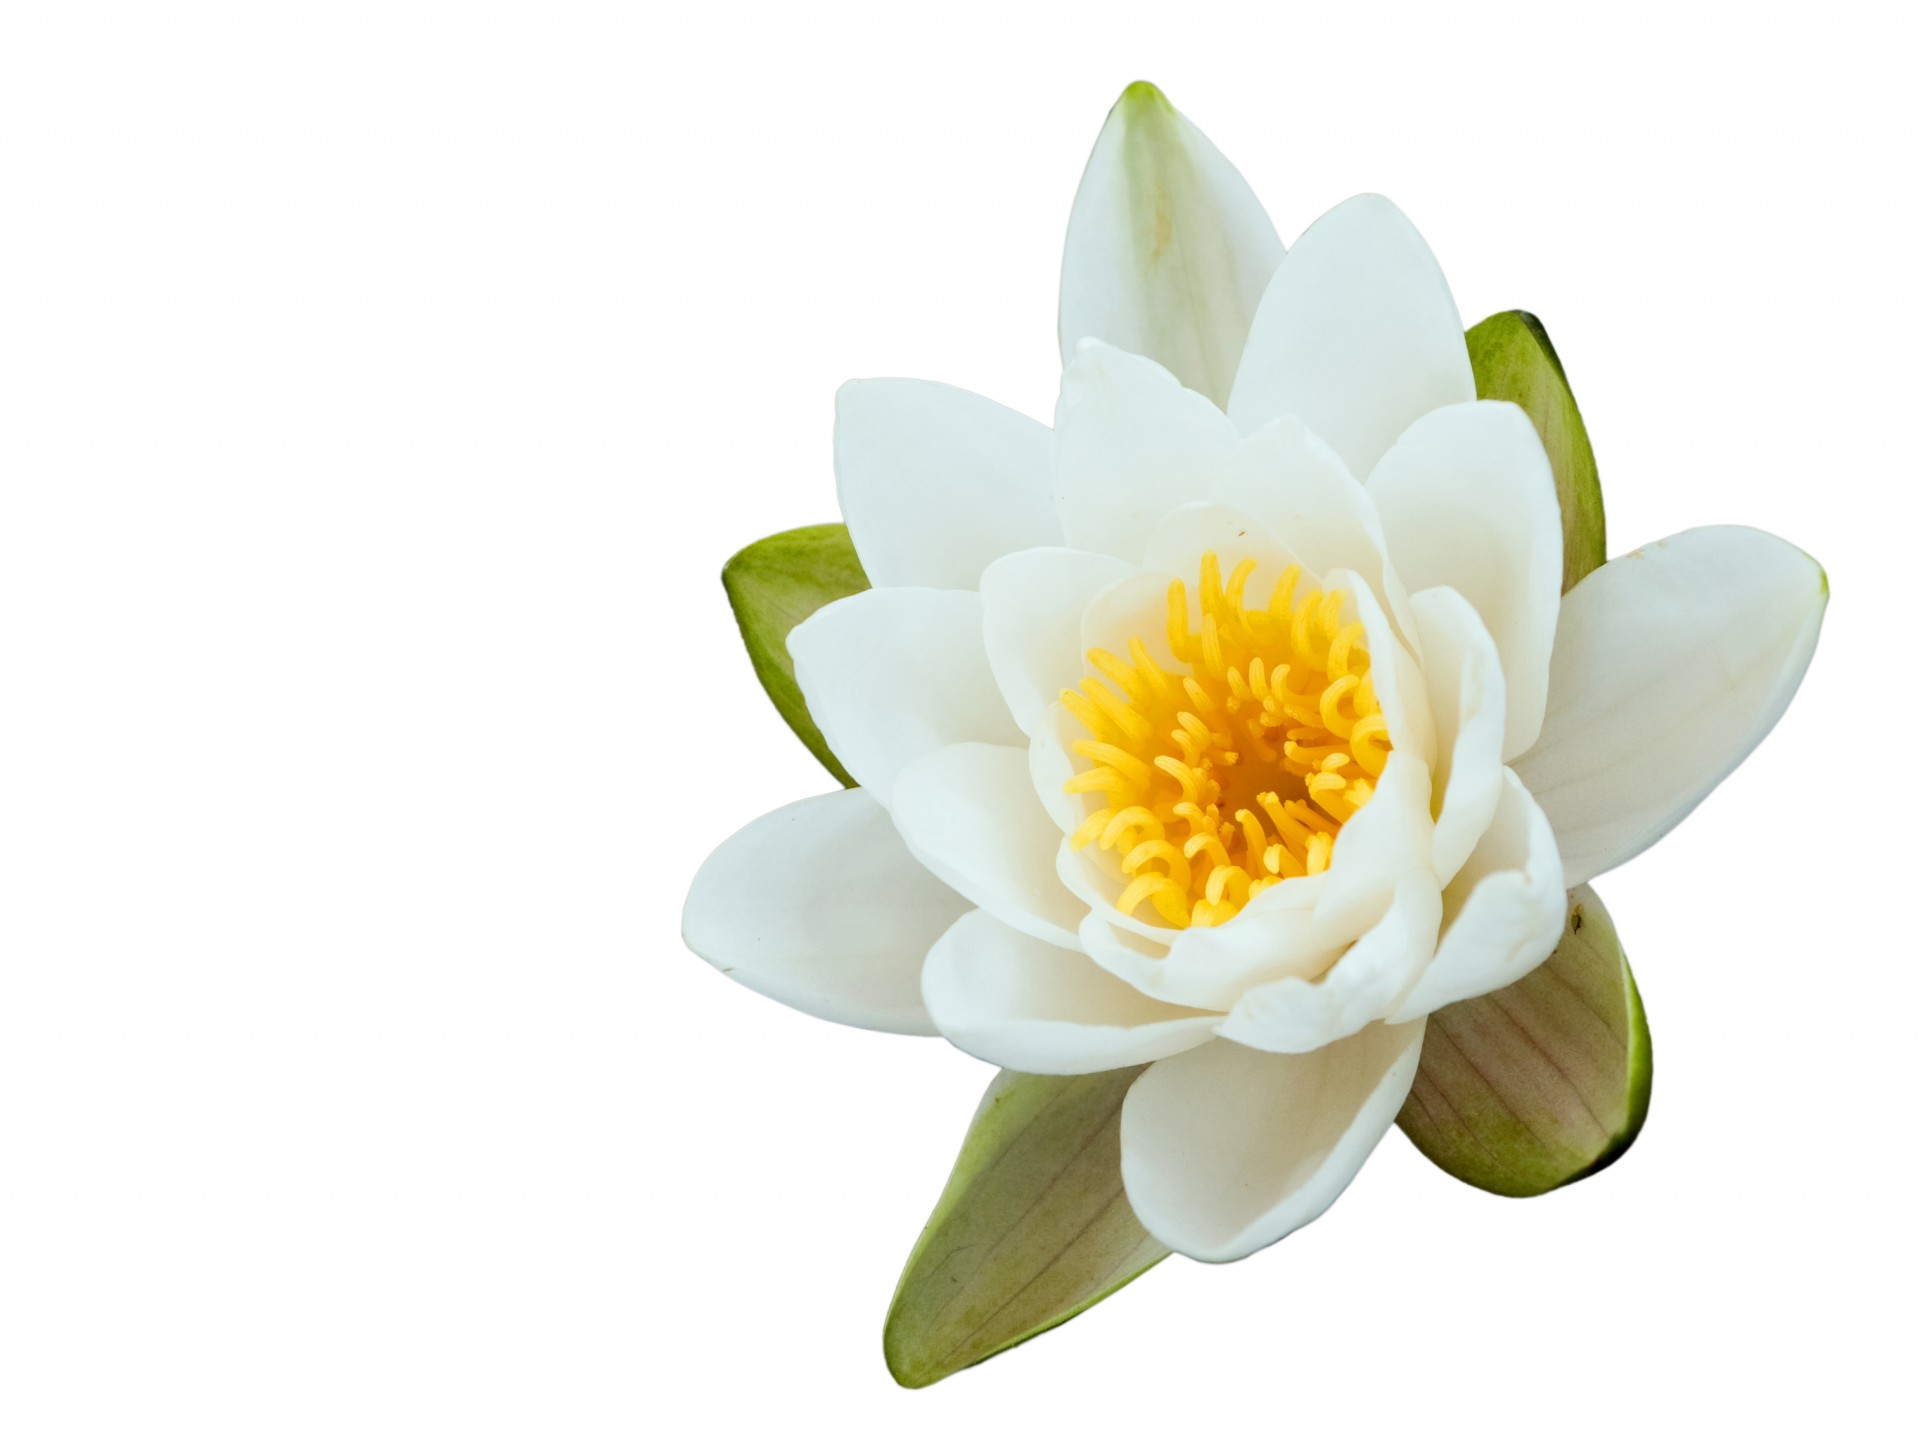 lotus-flower-on-white